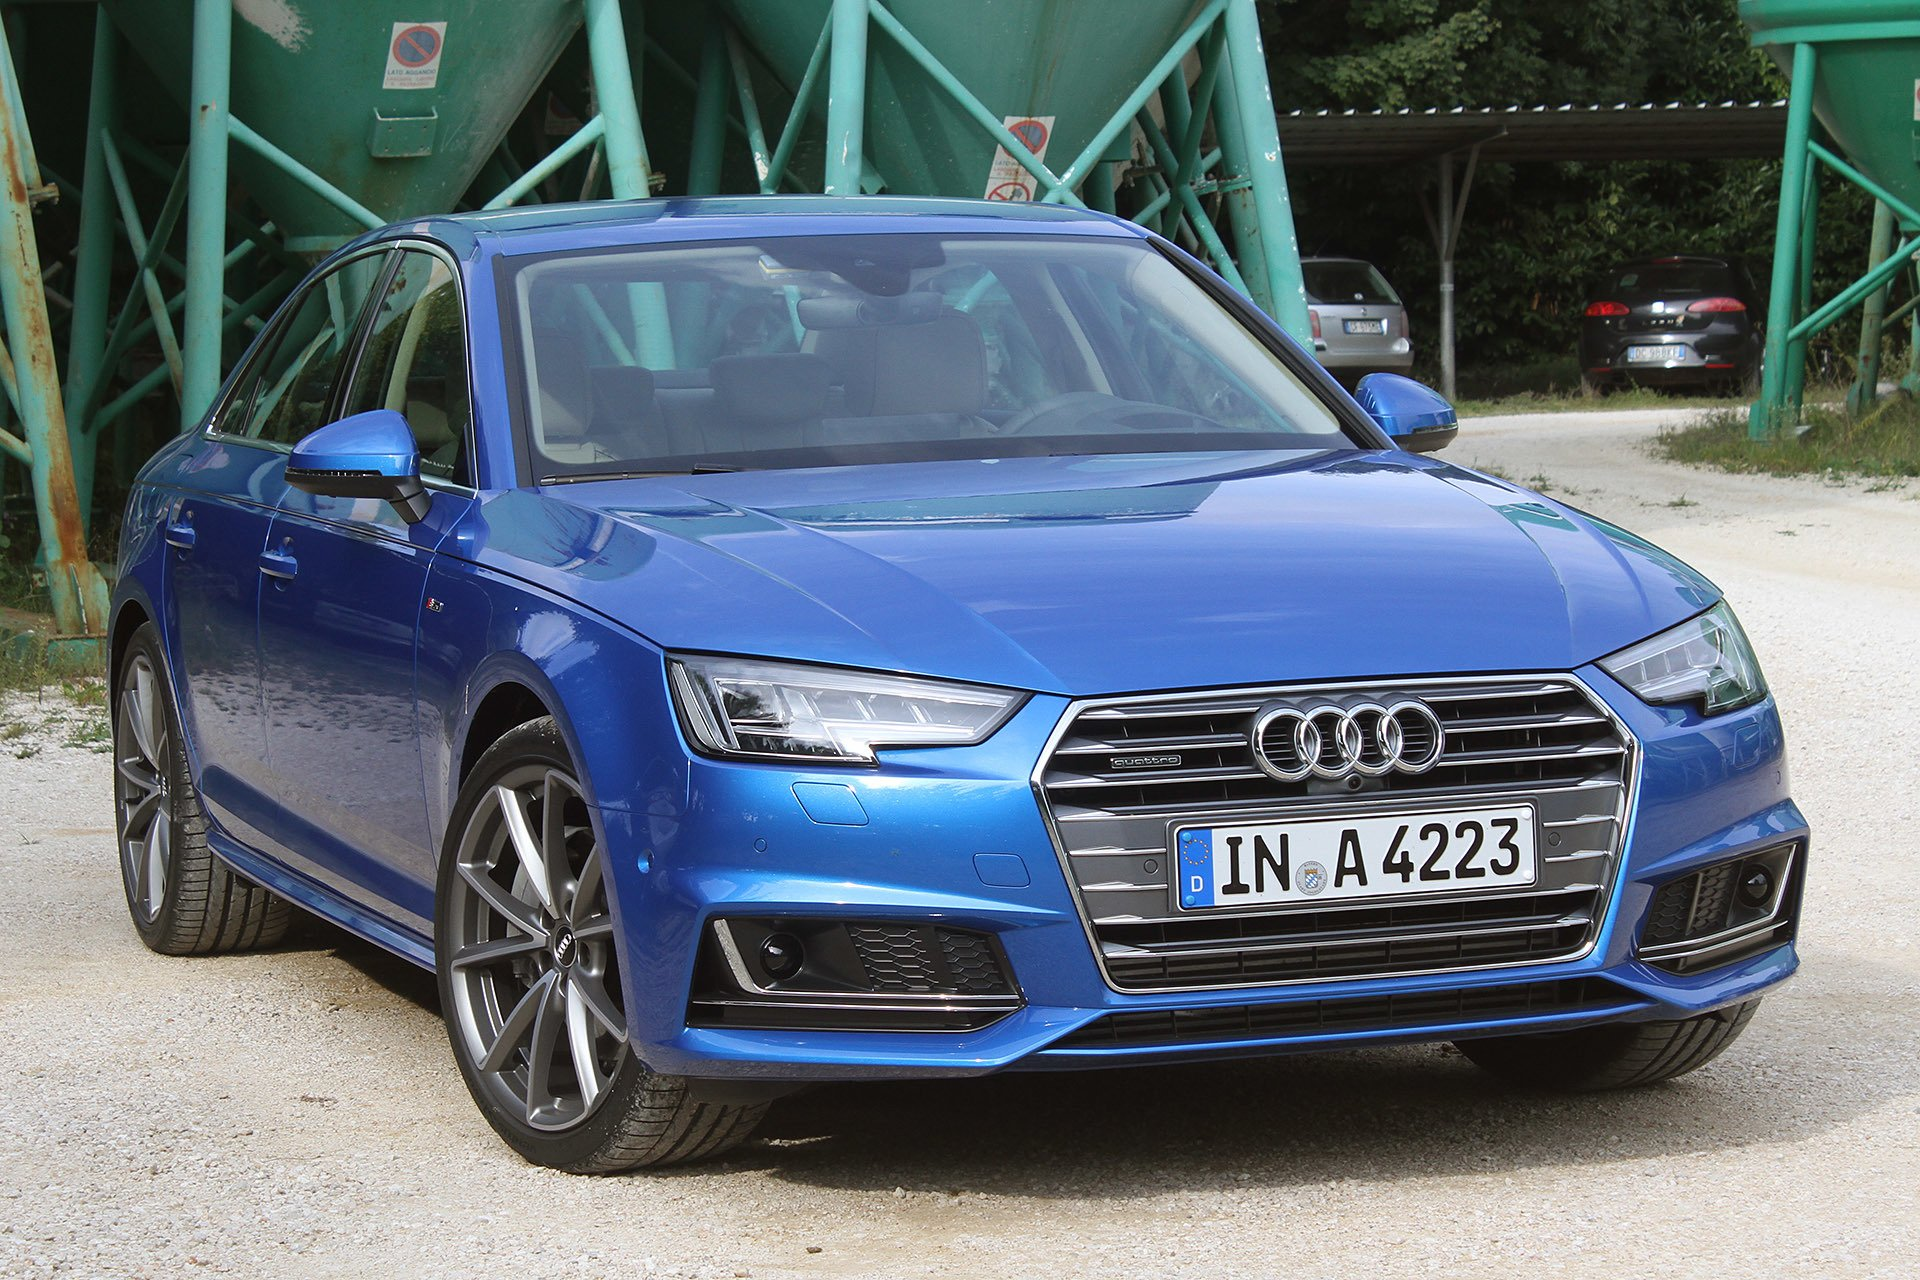 2016 Audi A4 Blue | 200+ Interior and Exterior Images